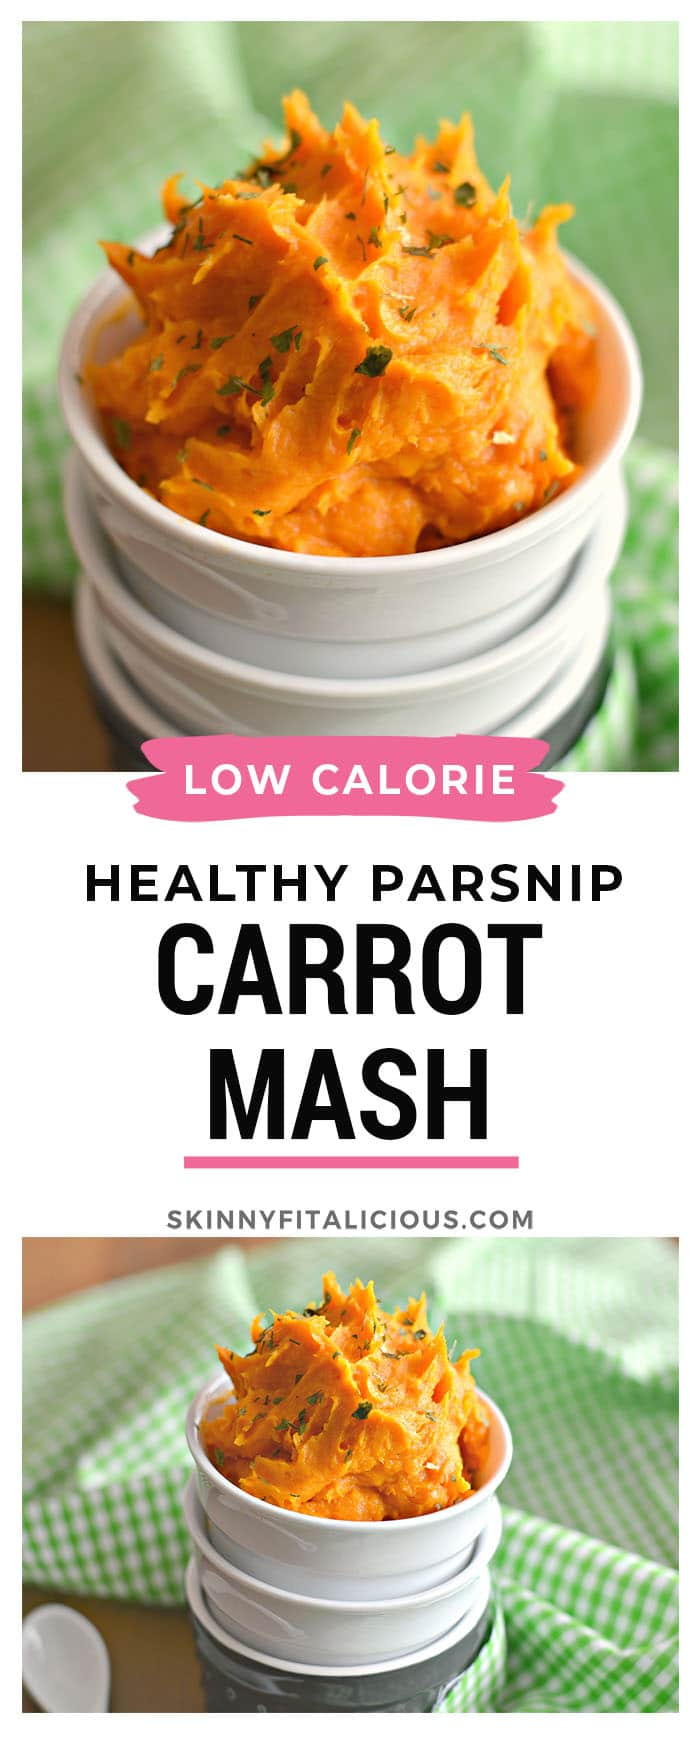 This Parsnip Carrot Mash is a healthy low calorie twist on traditional mashed potatoes. A delicious and easy to make side perfect to pair with any protein! Paleo + Vegan + Gluten Free + Low Calorie